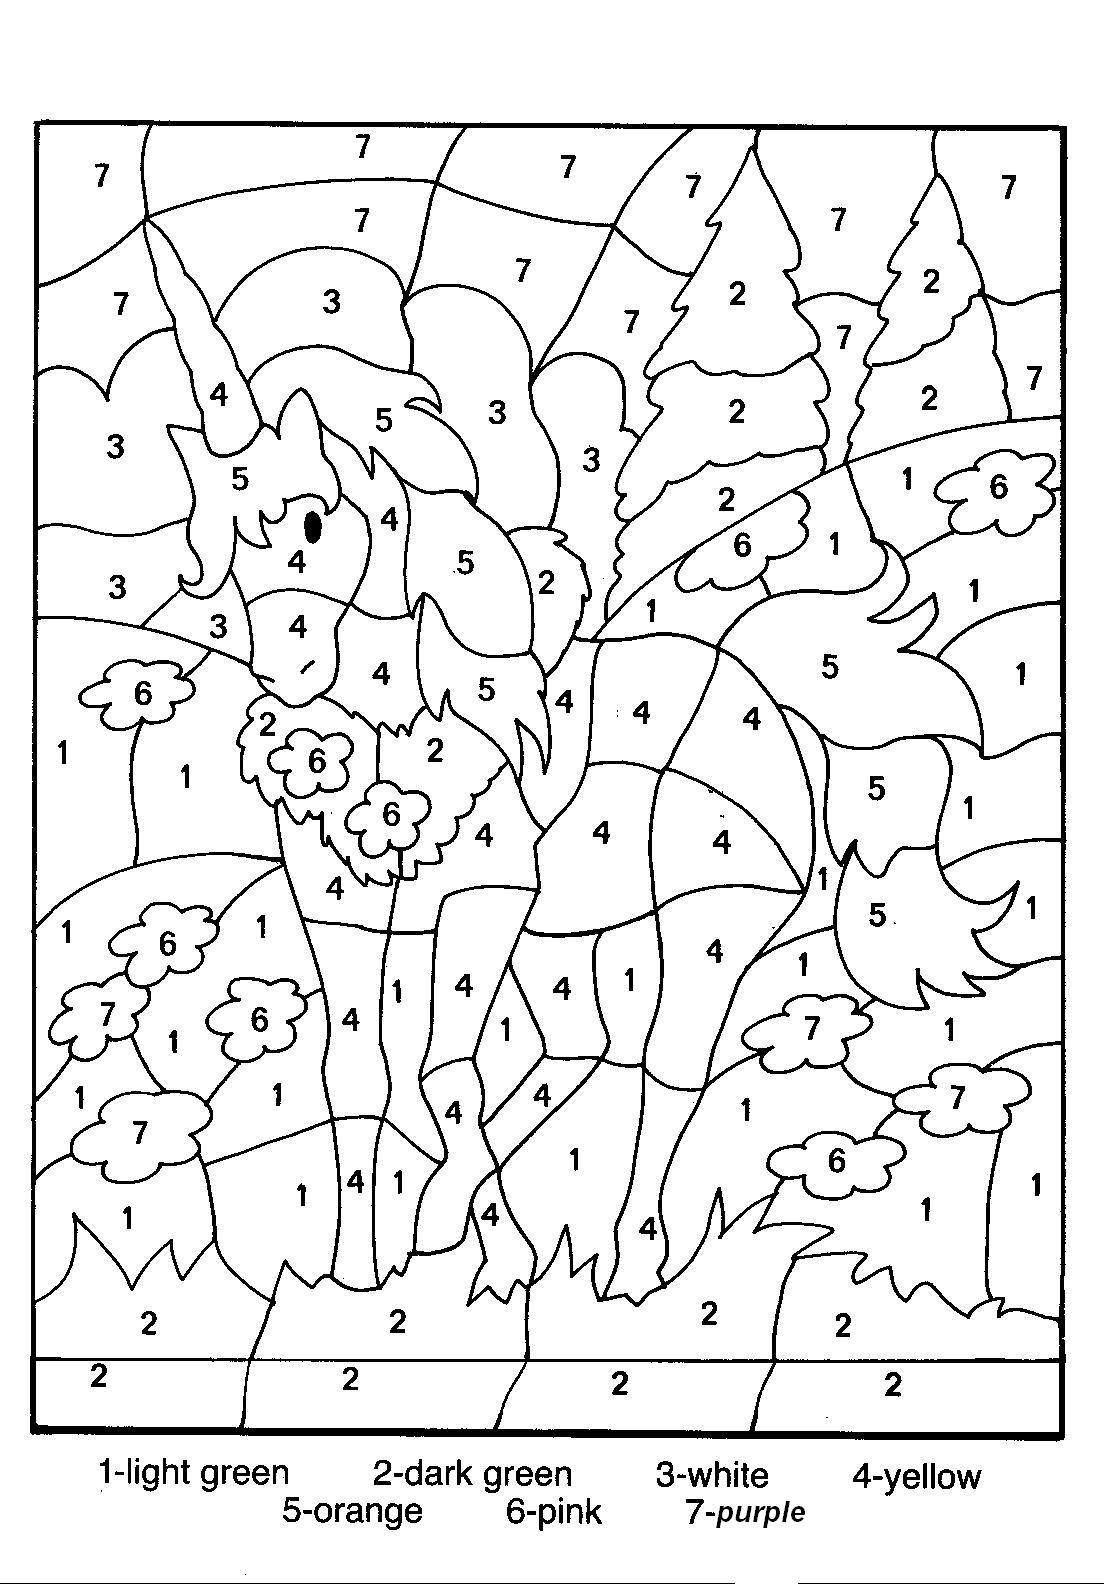 coloring worksheet by numbers color by number coloring pages to download and print for free worksheet by coloring numbers